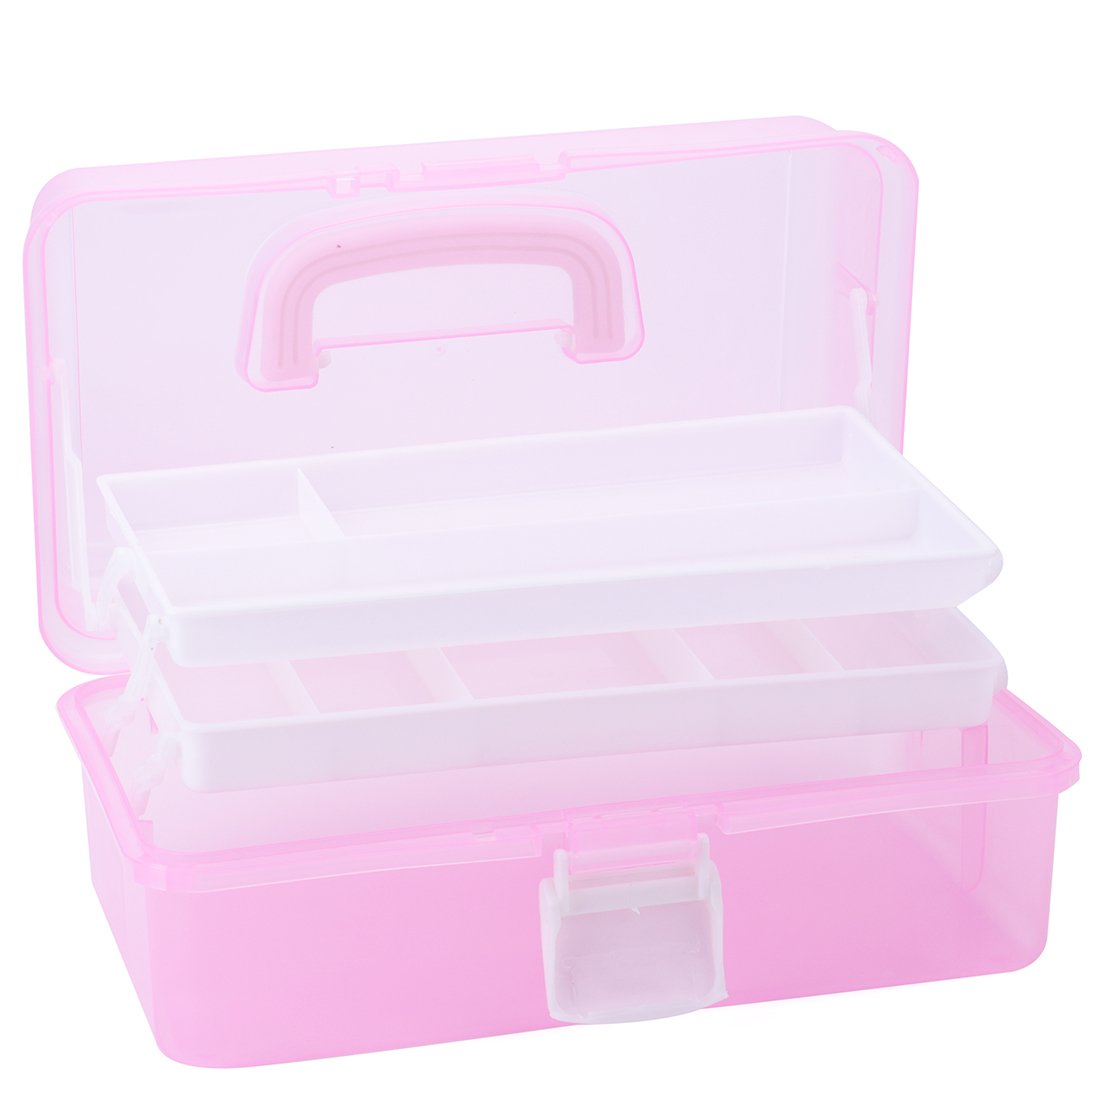 Tosnail Multipurpose Plastic Art Craft Supply Storage Case Storage Container with Two Trays - Pink